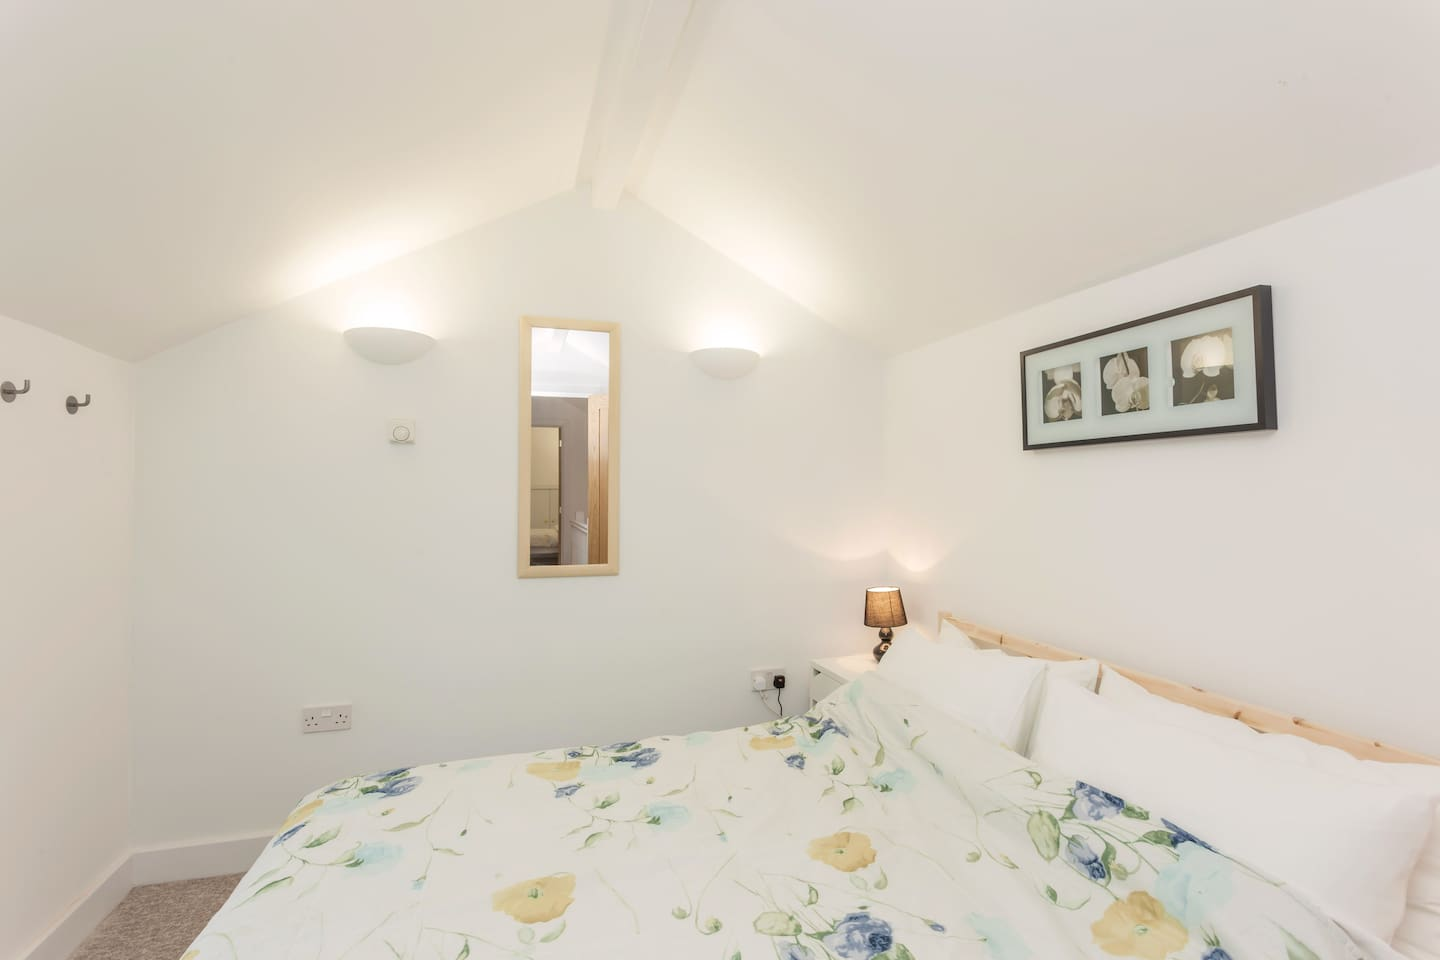 Thorn Cottage is a small but cosy cottage in the heart of Sherborne